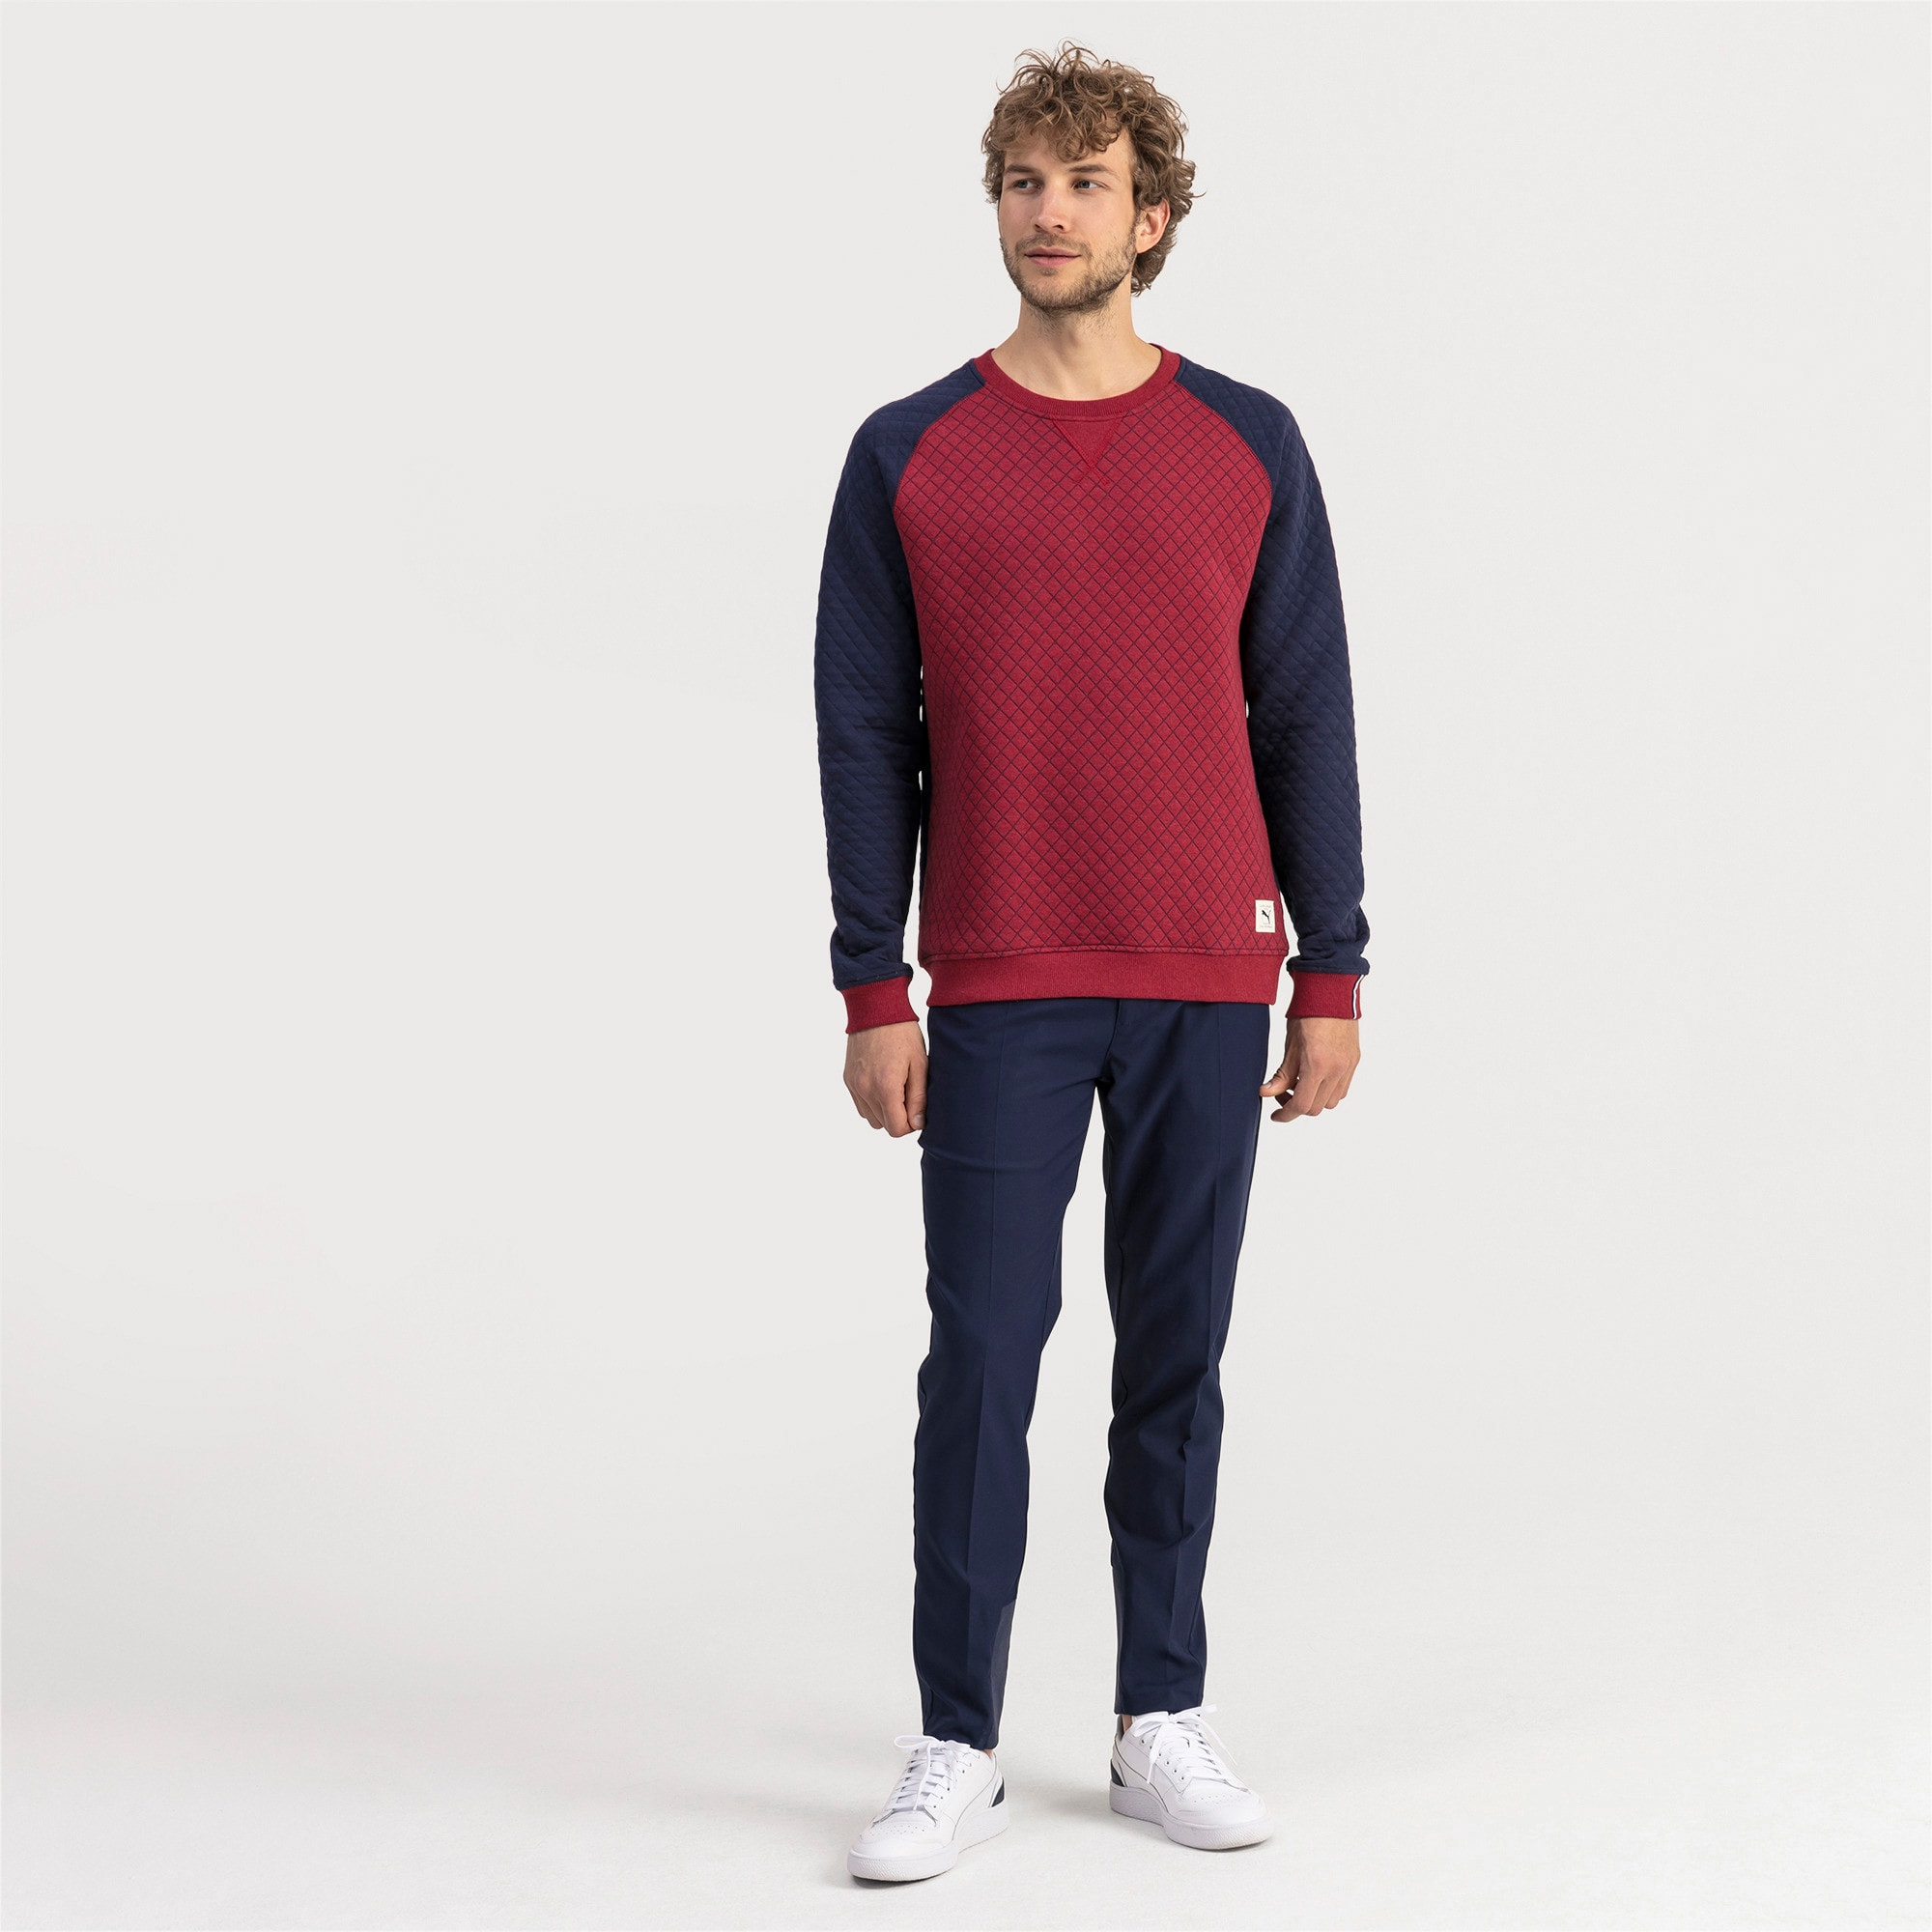 Thumbnail 3 of Gestepptes Herren Golf Sweatshirt, Rhubarb Heather, medium